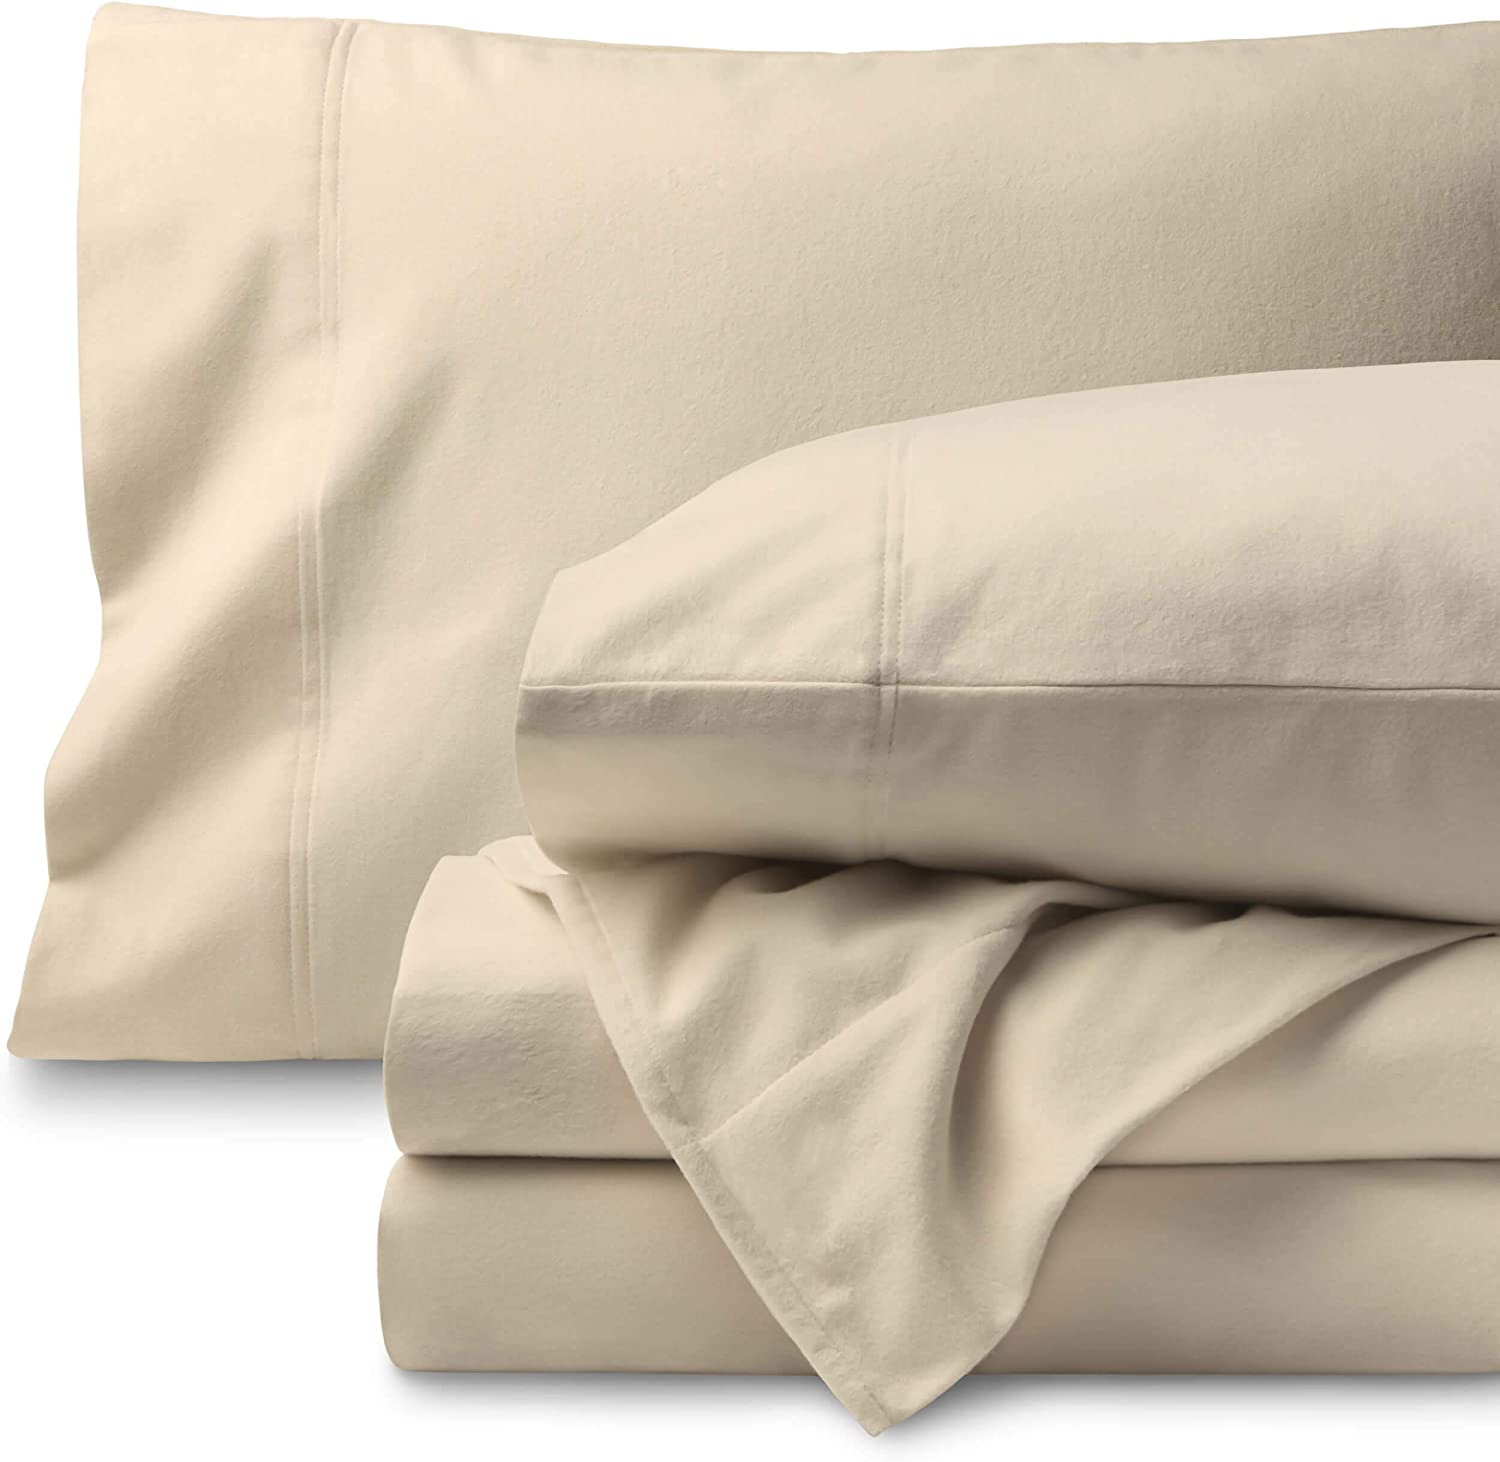 Bare Home Flannel Sheet Set 100% Cotton, Velvety Soft Heavyweight - Double Brushed Flannel - Deep Pocket (Twin, Sand)